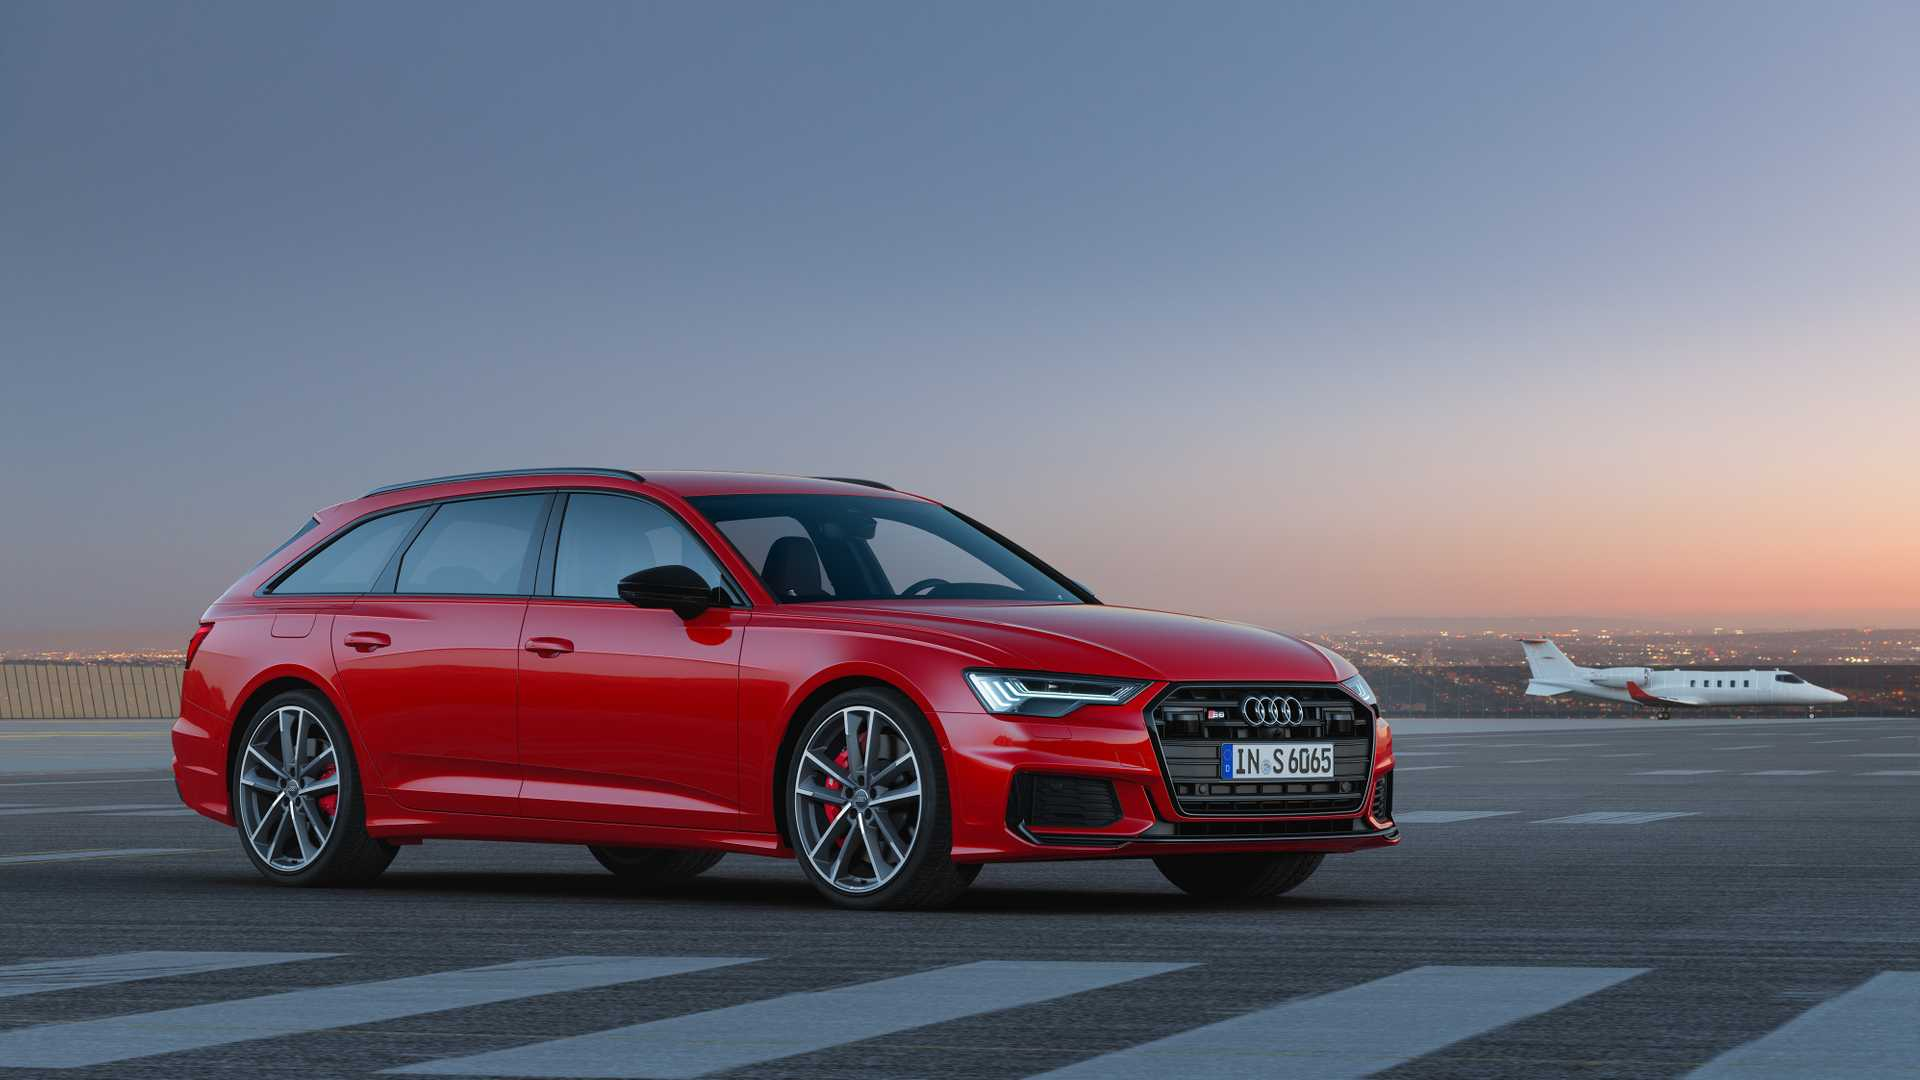 2019 Audi S6 Avant TDI (Color: Tango Red) Front Three-Quarter Wallpapers (8)